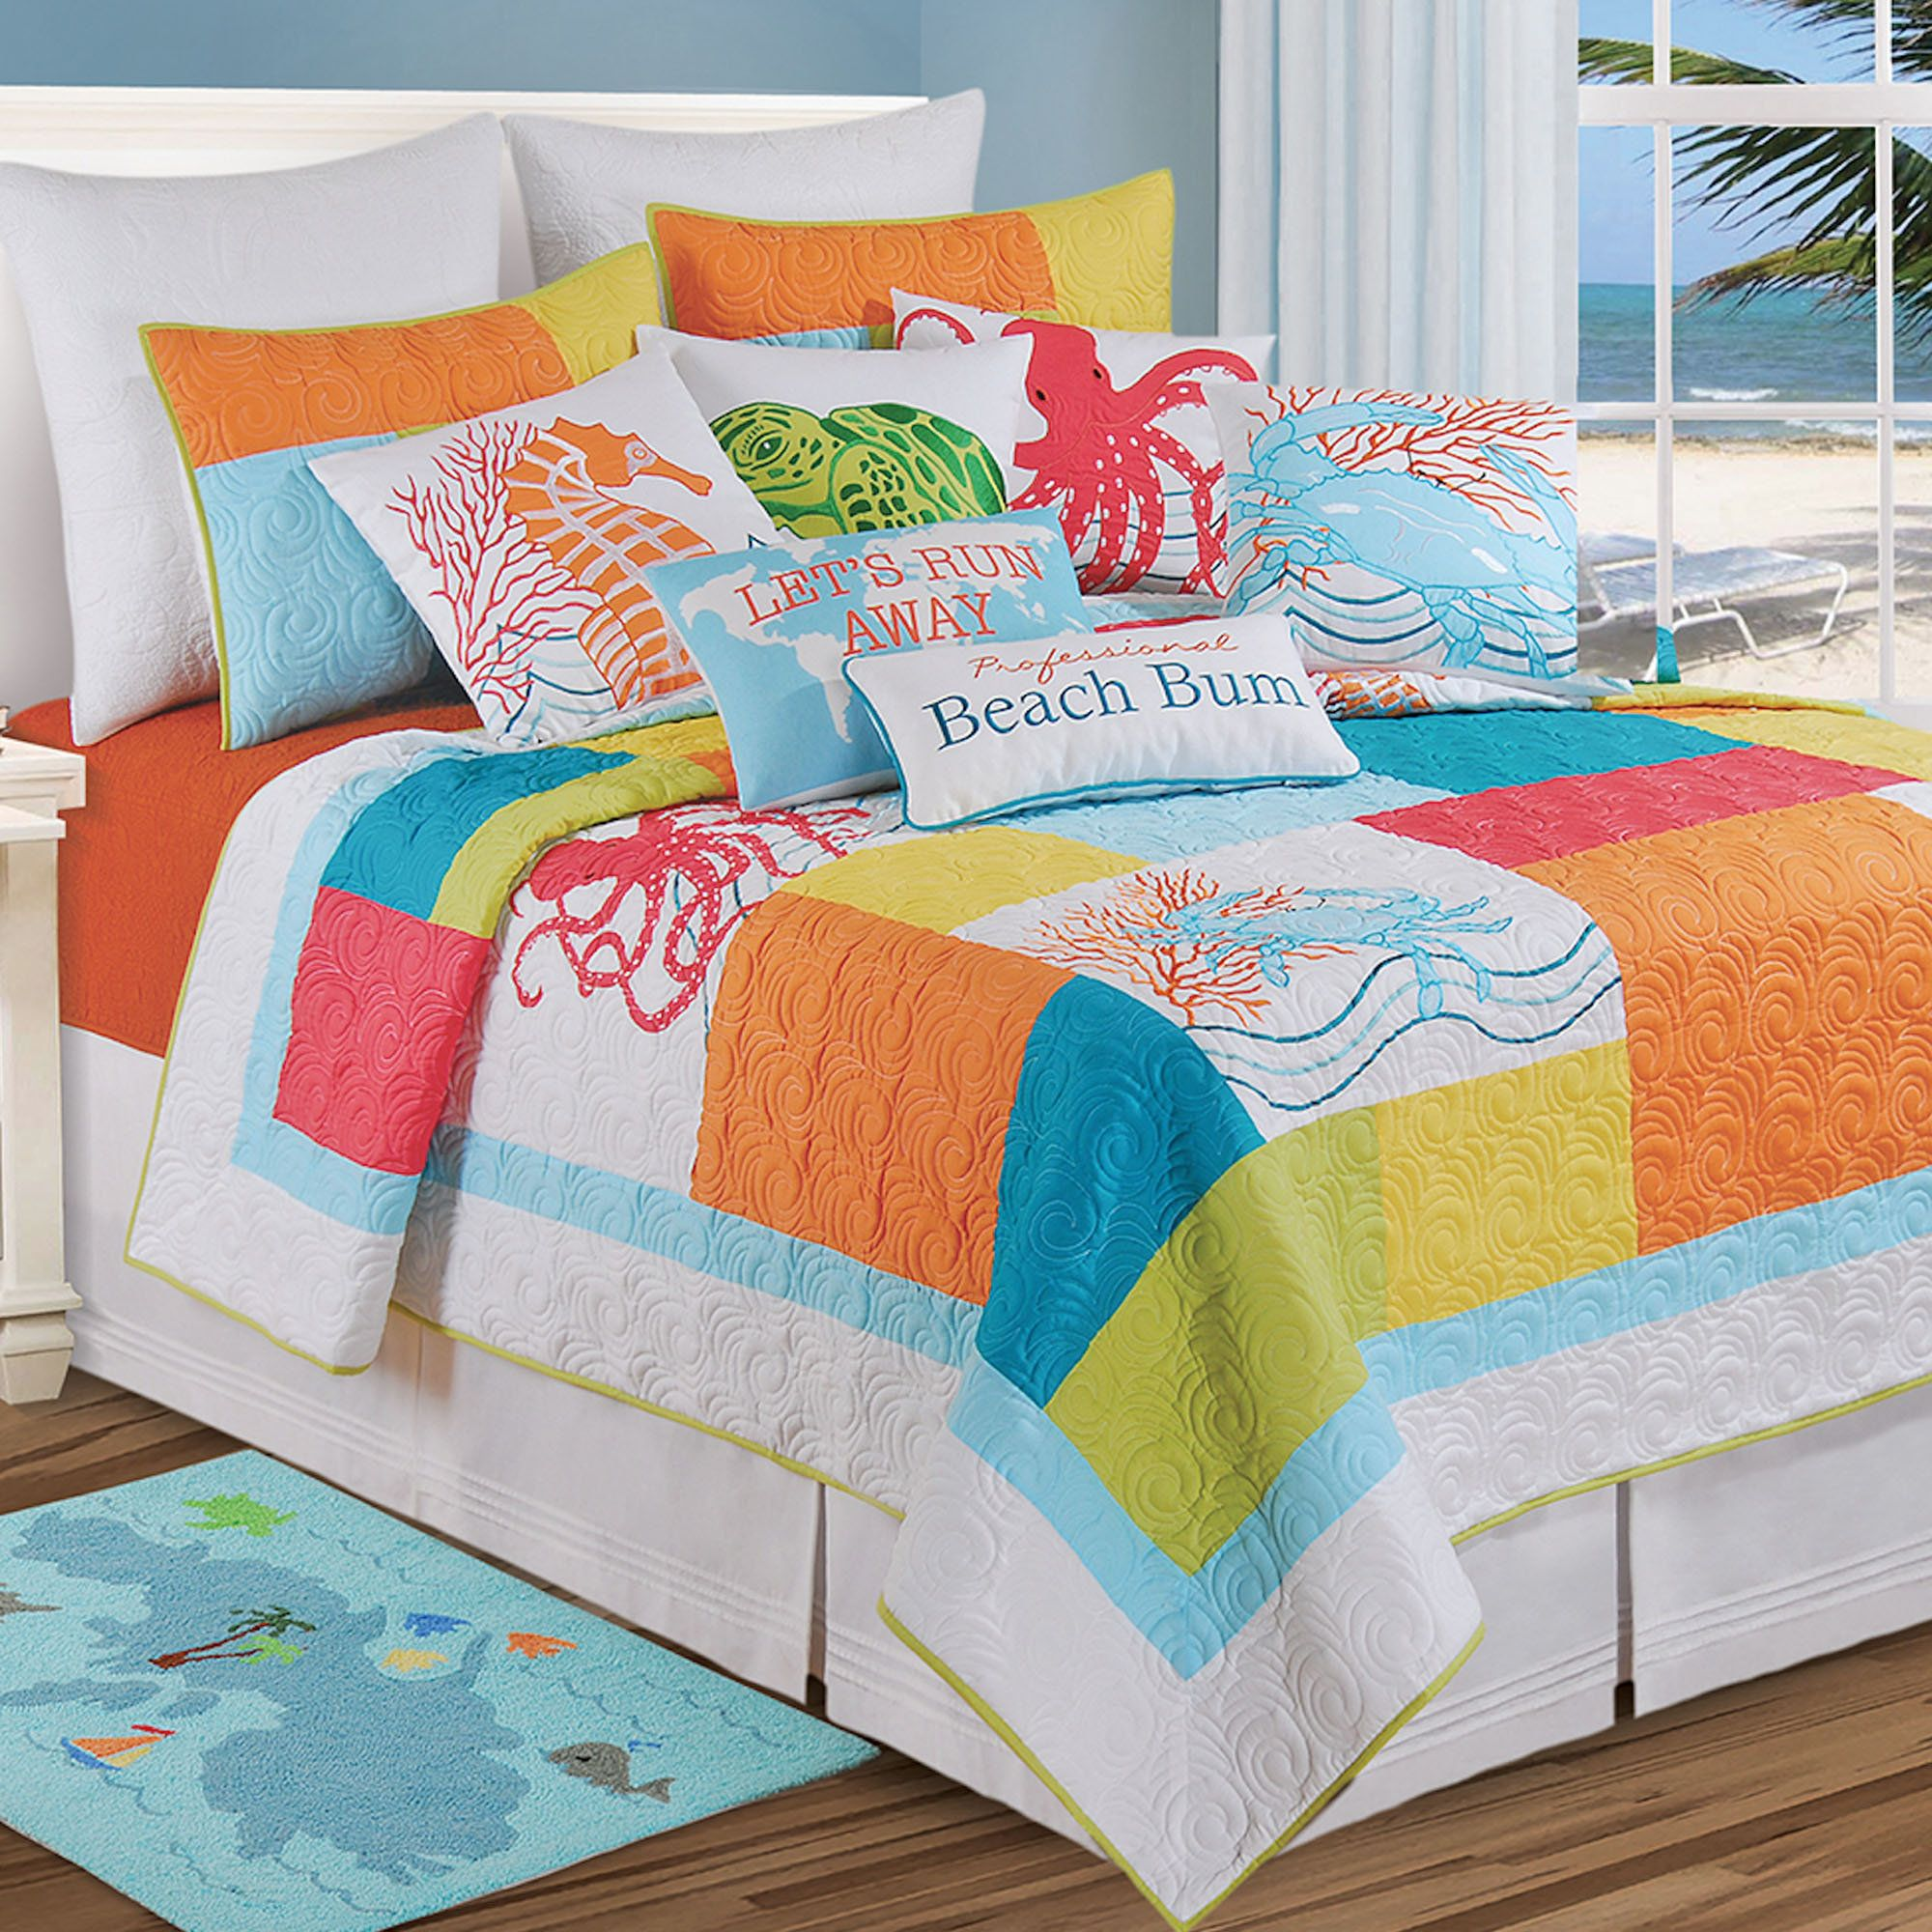 sets comforter tropical quilt quilts style coverlets full queen coverlet bedding of size inspired and covers beach